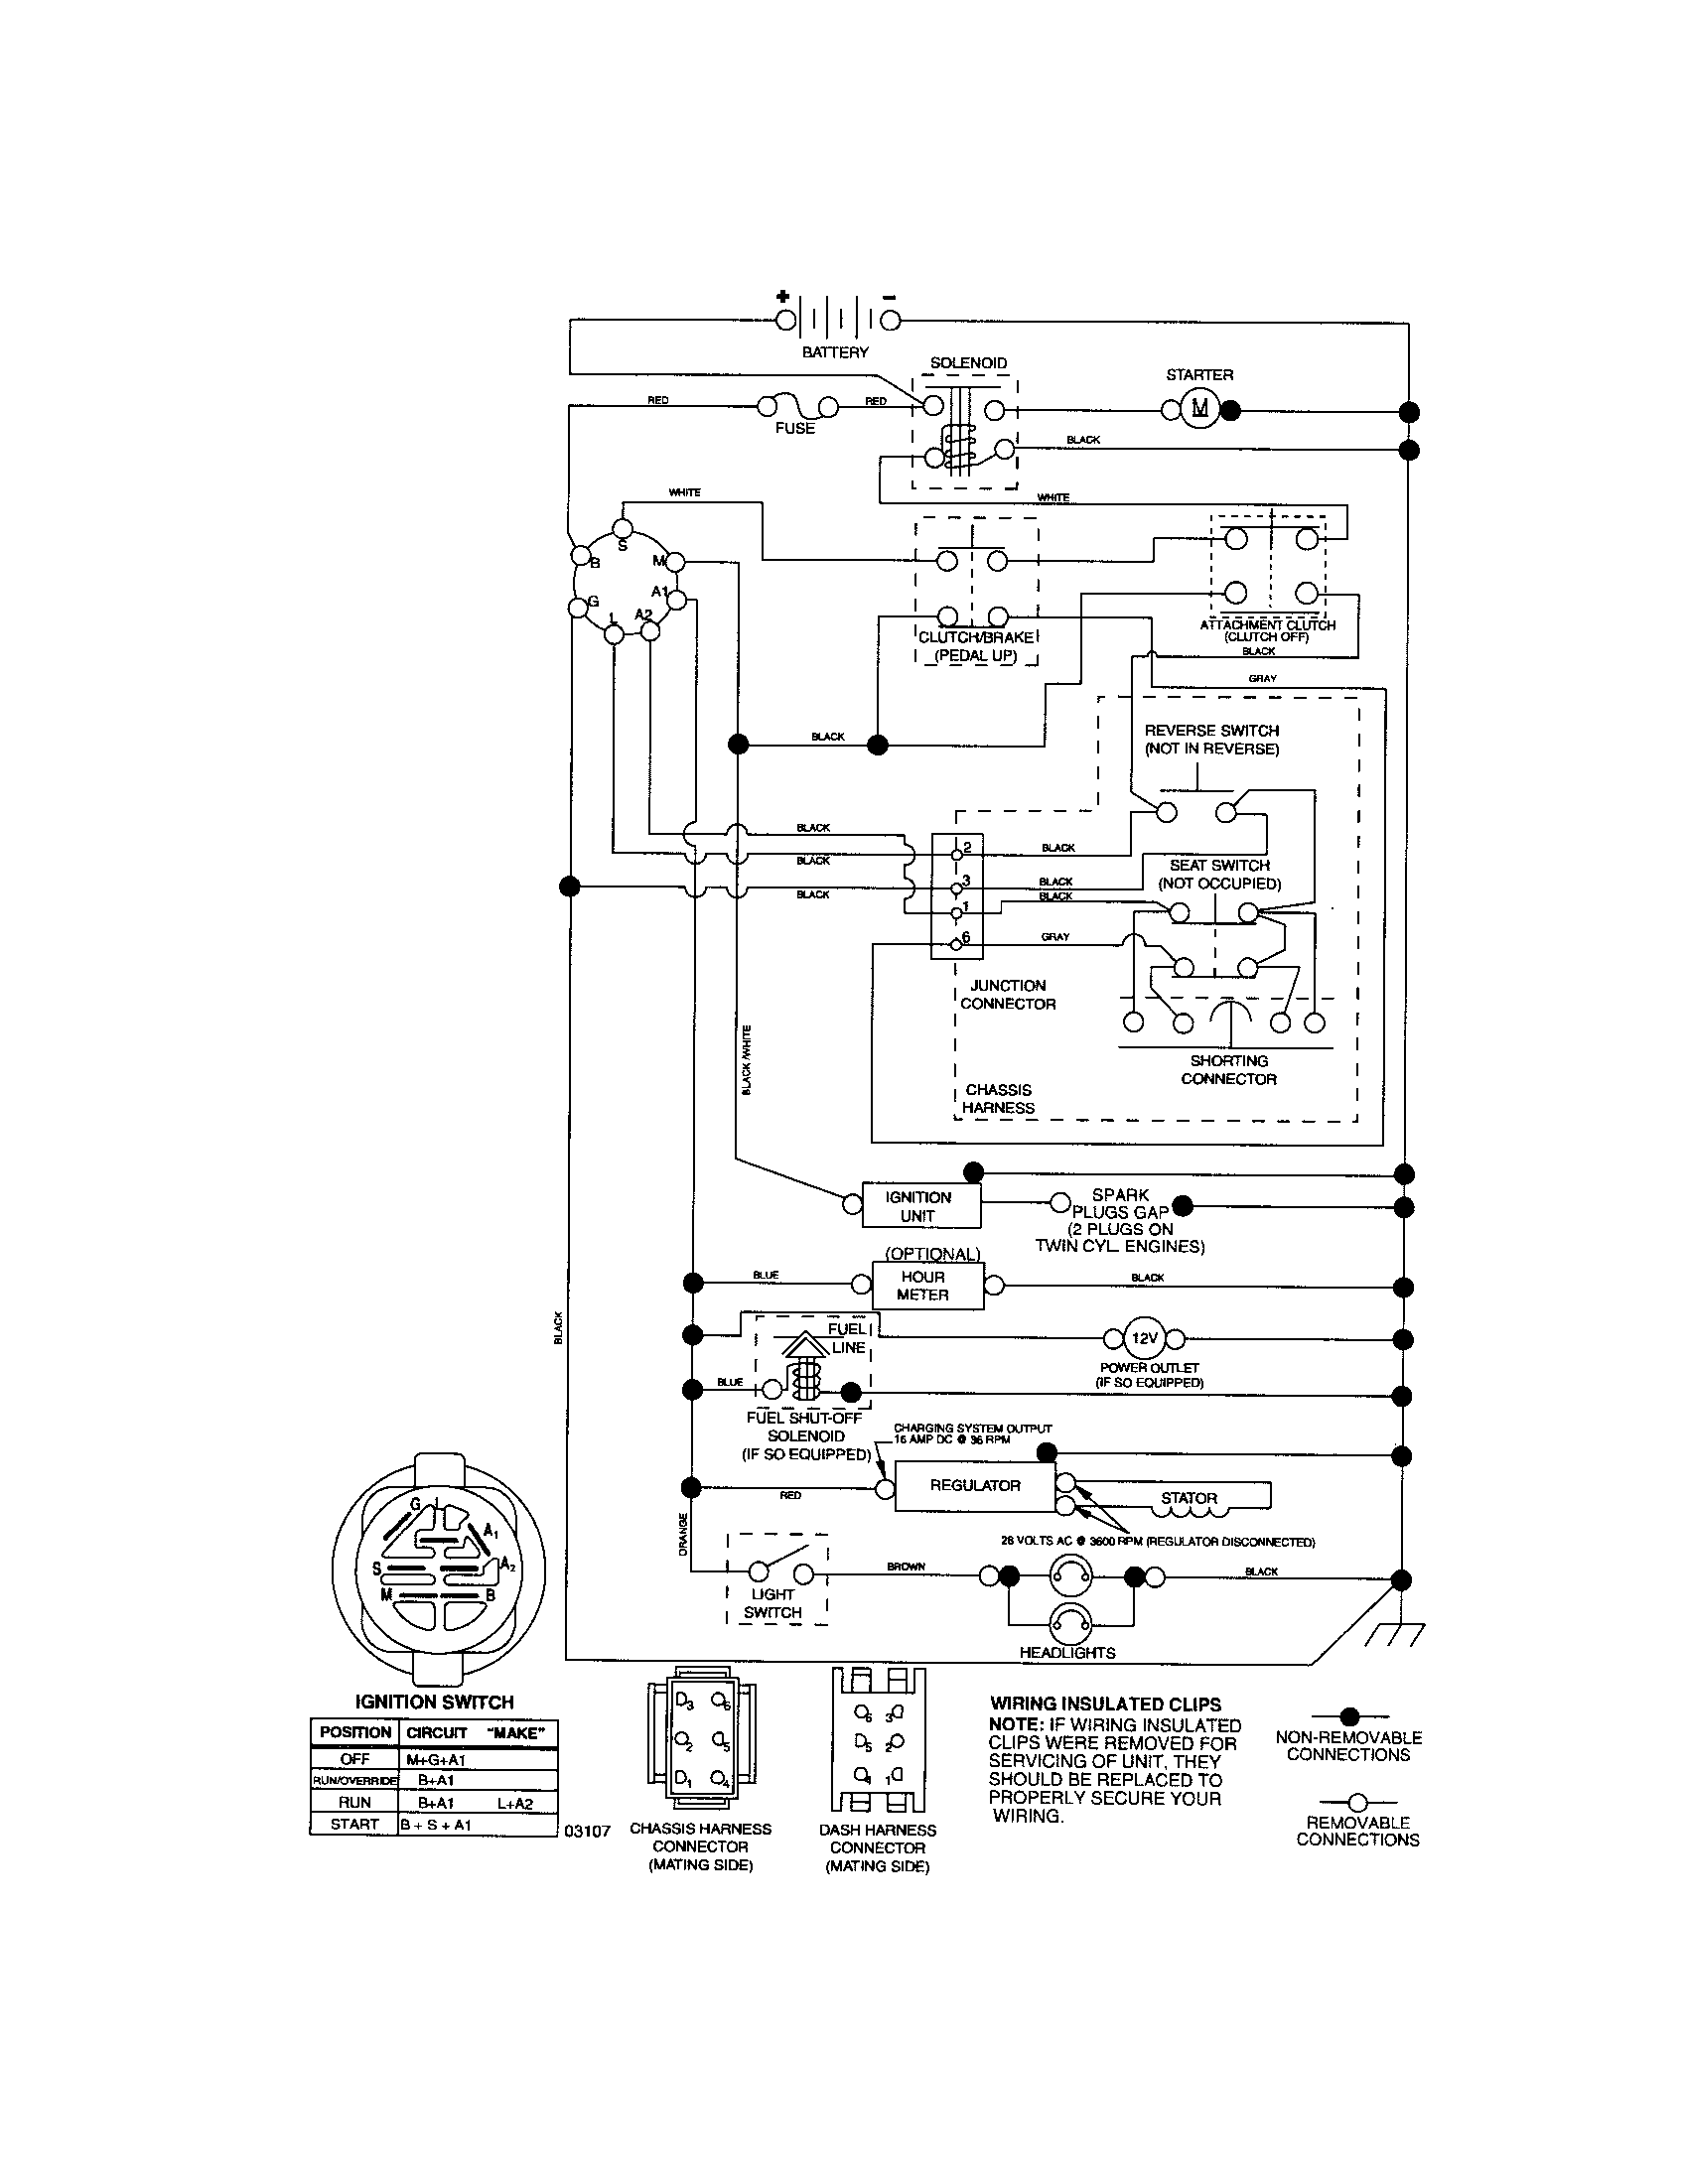 6af5f1447fd13c8443376822ddc1e105 craftsman riding mower electrical diagram wiring diagram Briggs Stratton Engine Diagram at gsmx.co